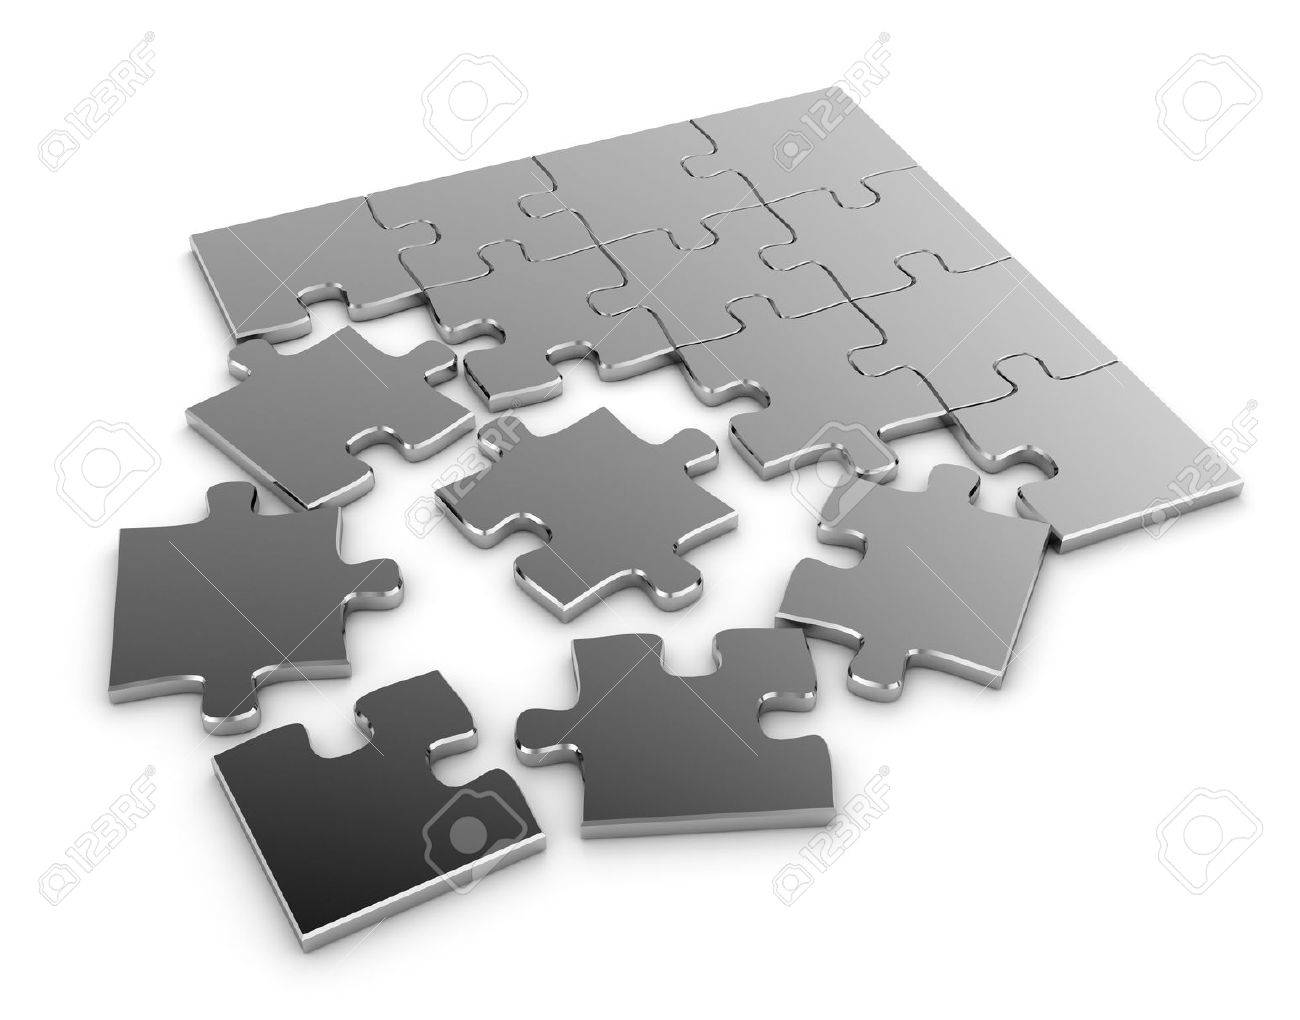 3d illustration of a jigsaw puzzle stock photo picture and